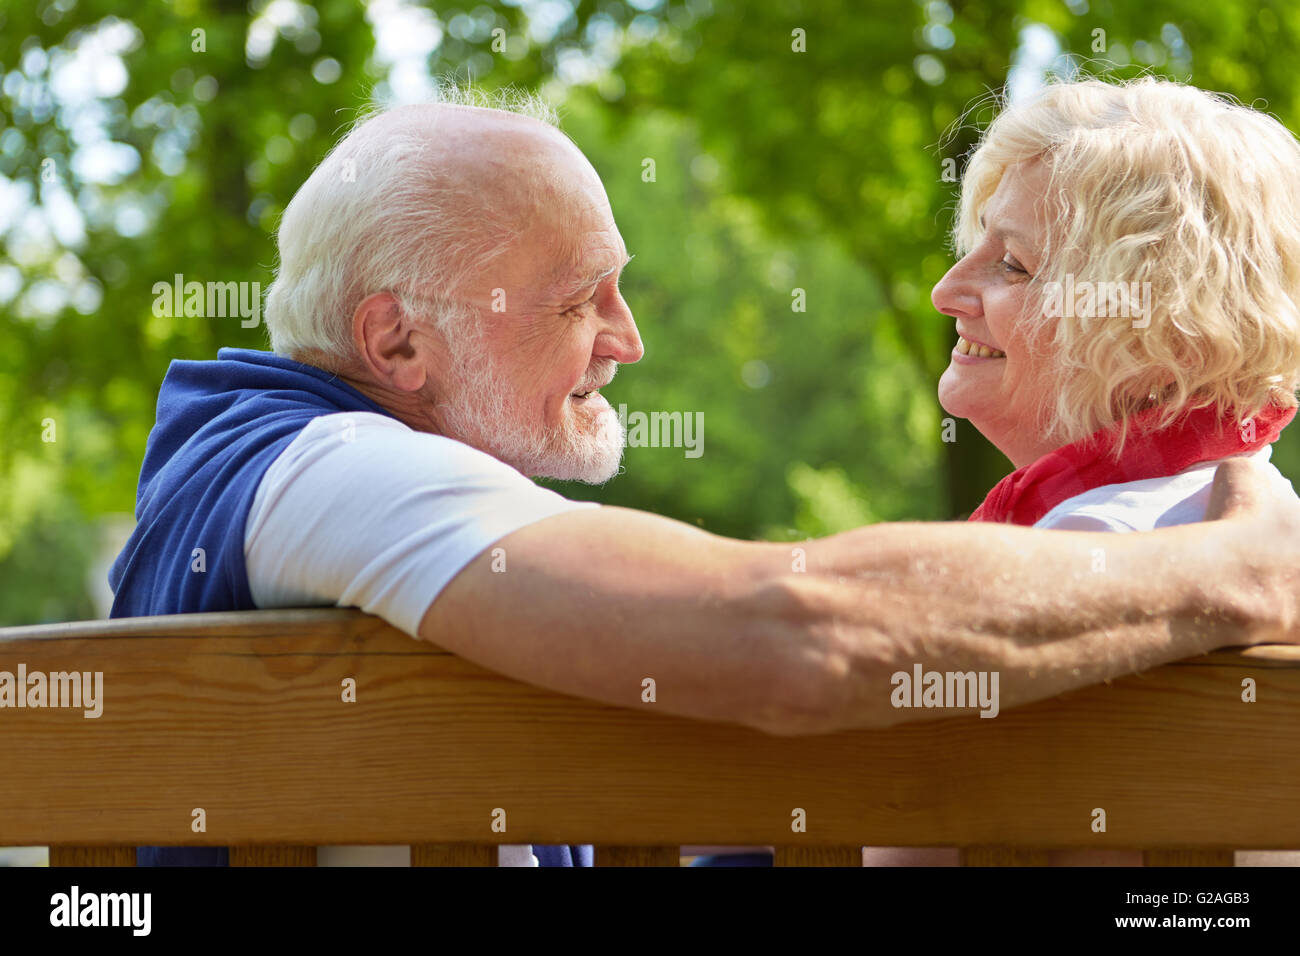 No Fee Biggest Seniors Online Dating Website